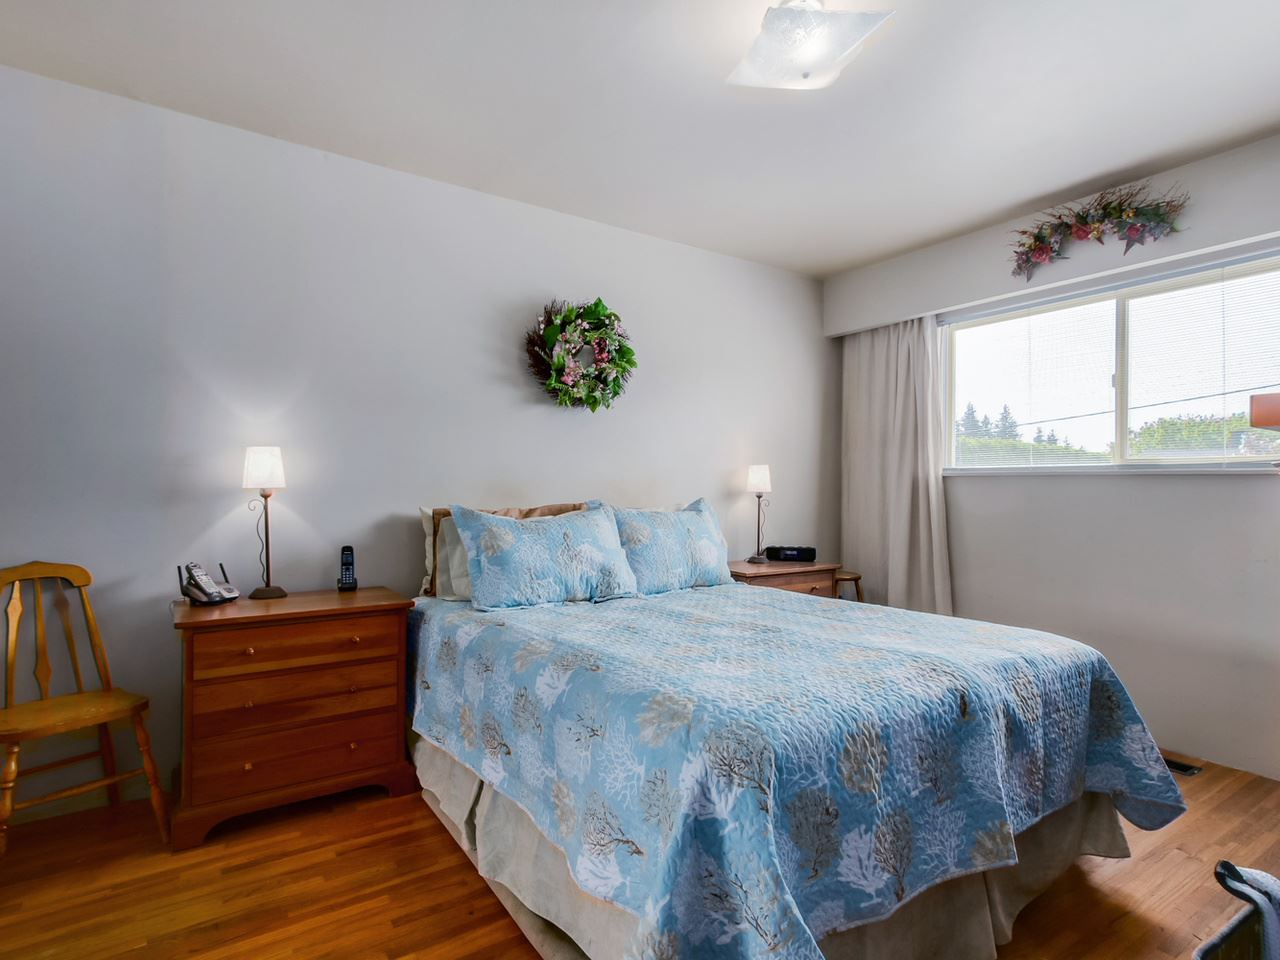 Photo 12: 2415 LAURALYNN Drive in North Vancouver: Westlynn House for sale : MLS® # R2062323